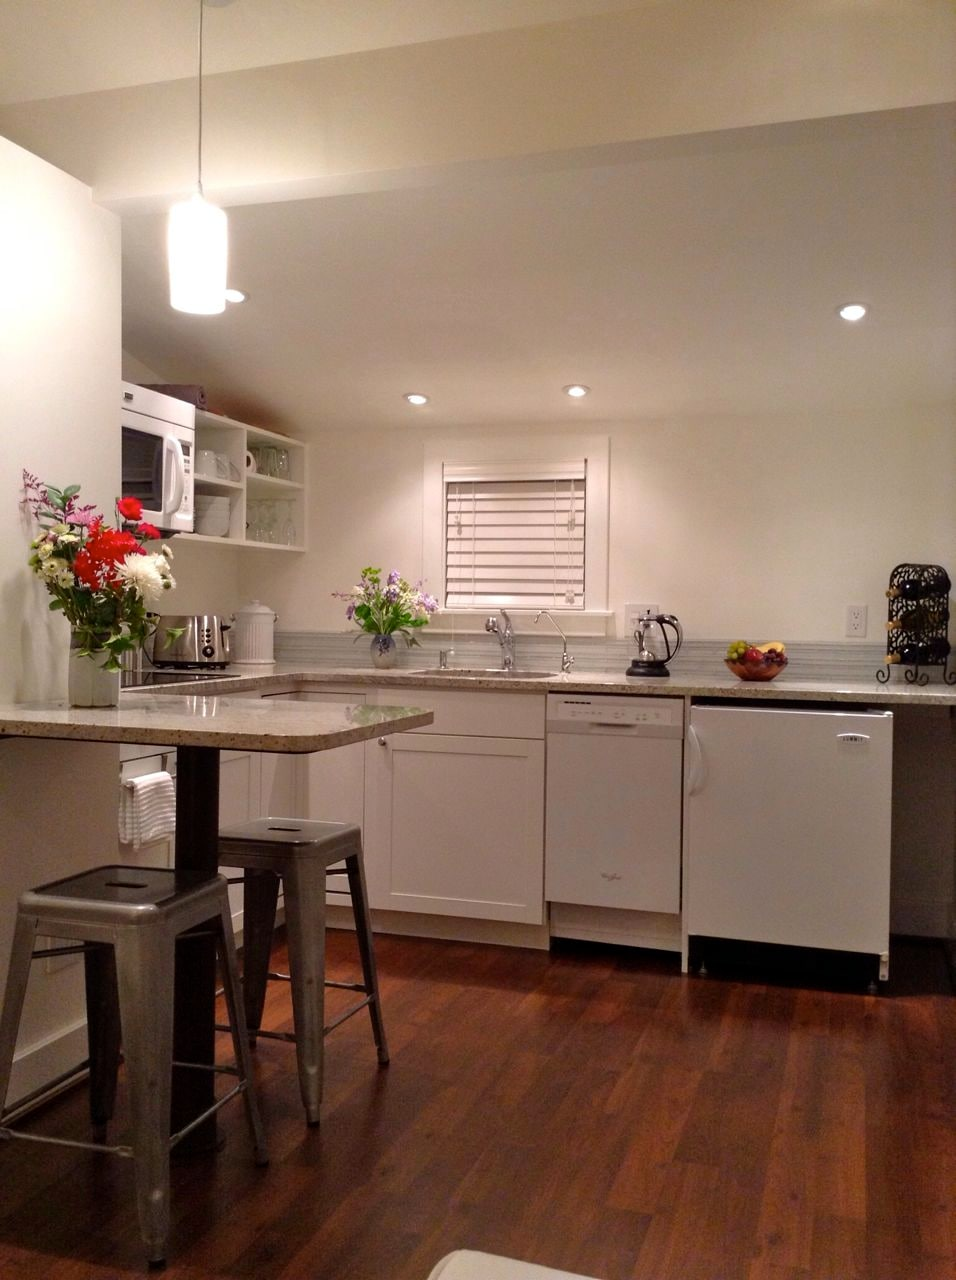 Kitchen: granite countertops, induction range, microwave/convection oven, dishwasher, refrigerator, filtered water.